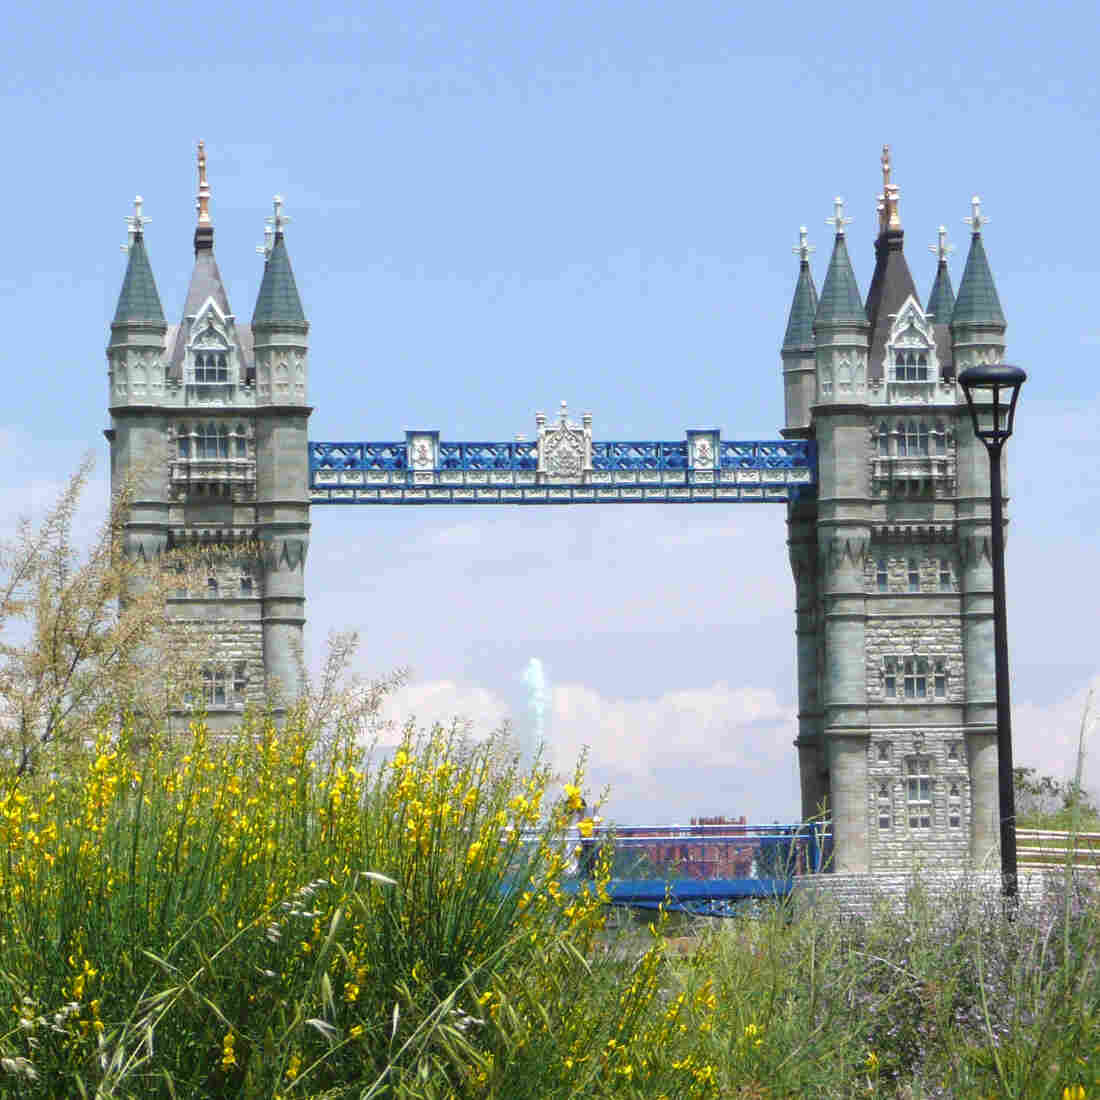 A model of London's Tower Bridge straddles a man-made river at the center of Spain's Parque Europa, a theme park replicas of the continent's most famous monuments.